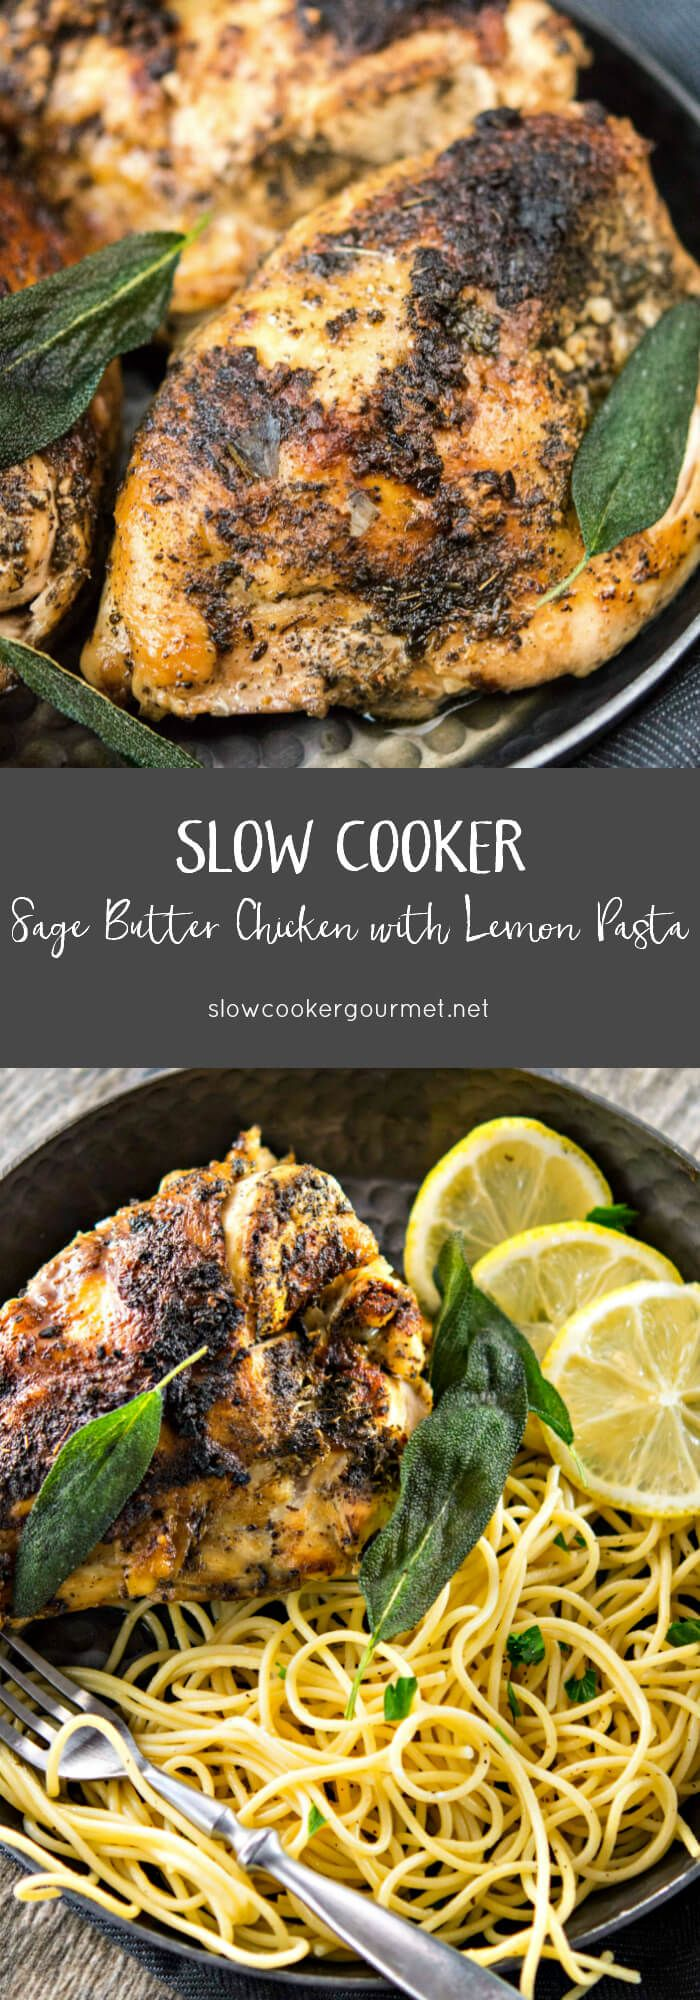 Slow Cooker Sage Butter Chicken with Lemon Pasta #savory #protein #zesty